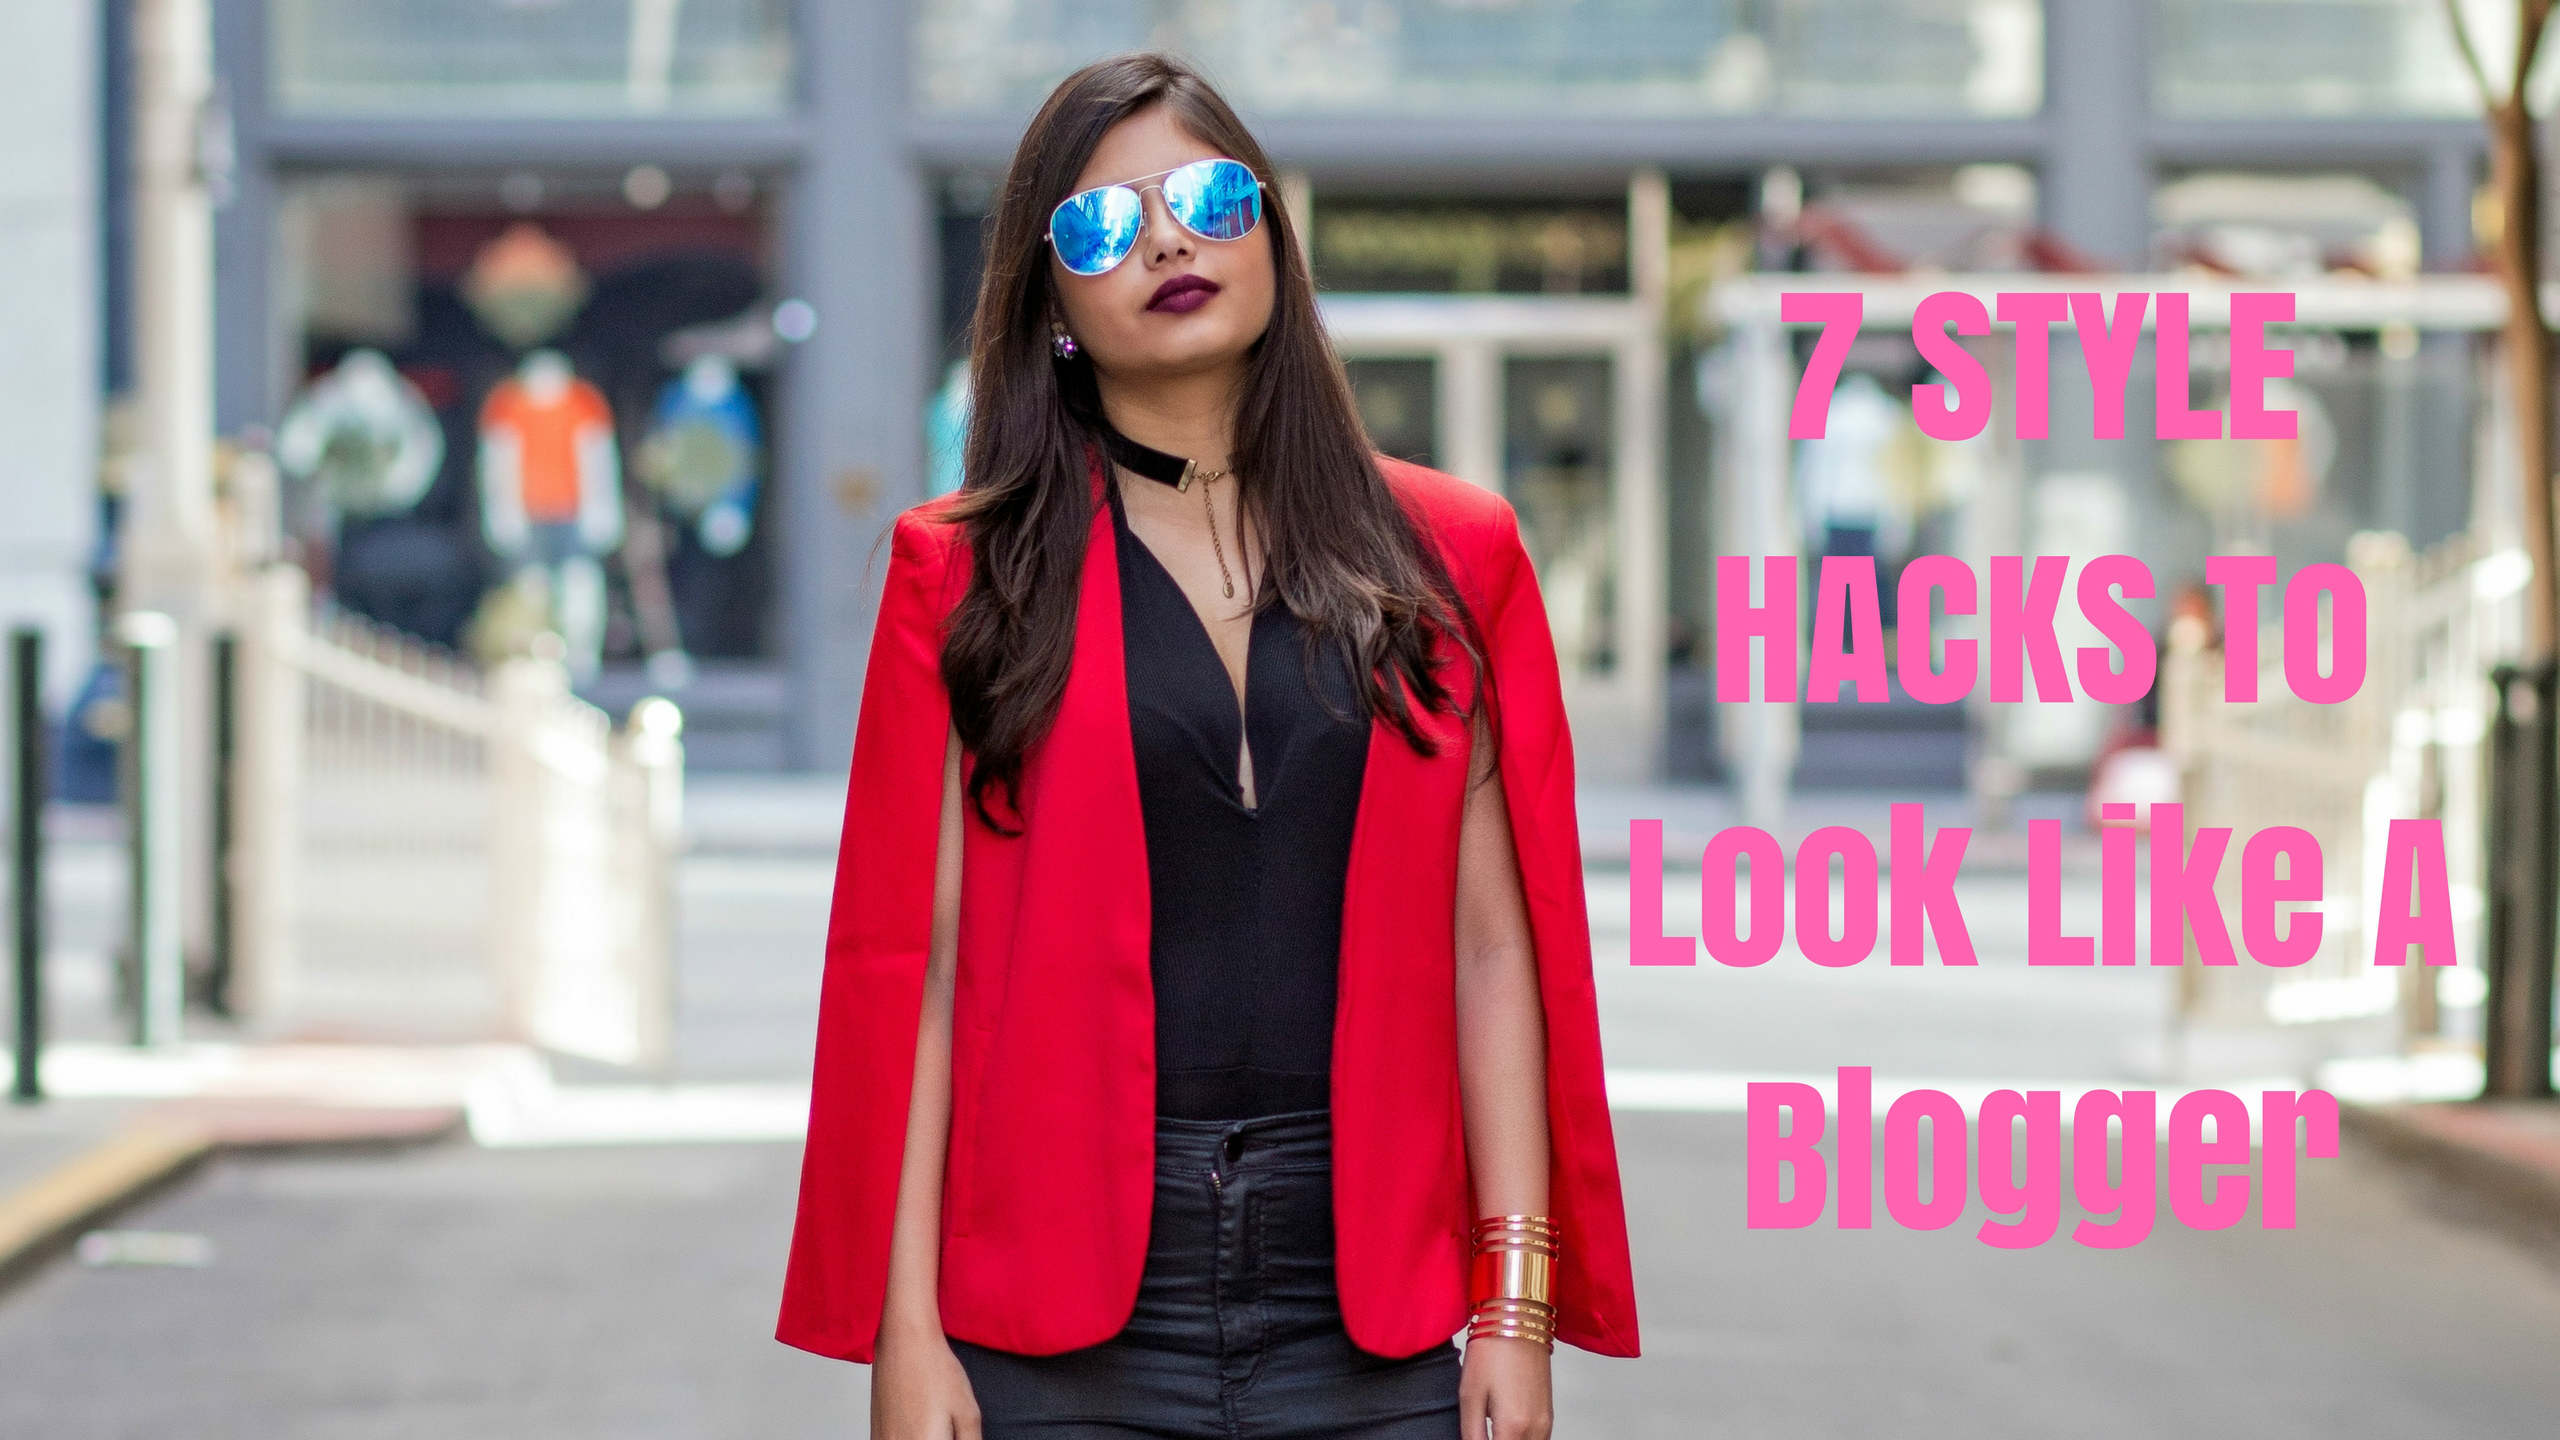 7 Style Hacks To Get A Blogger Look